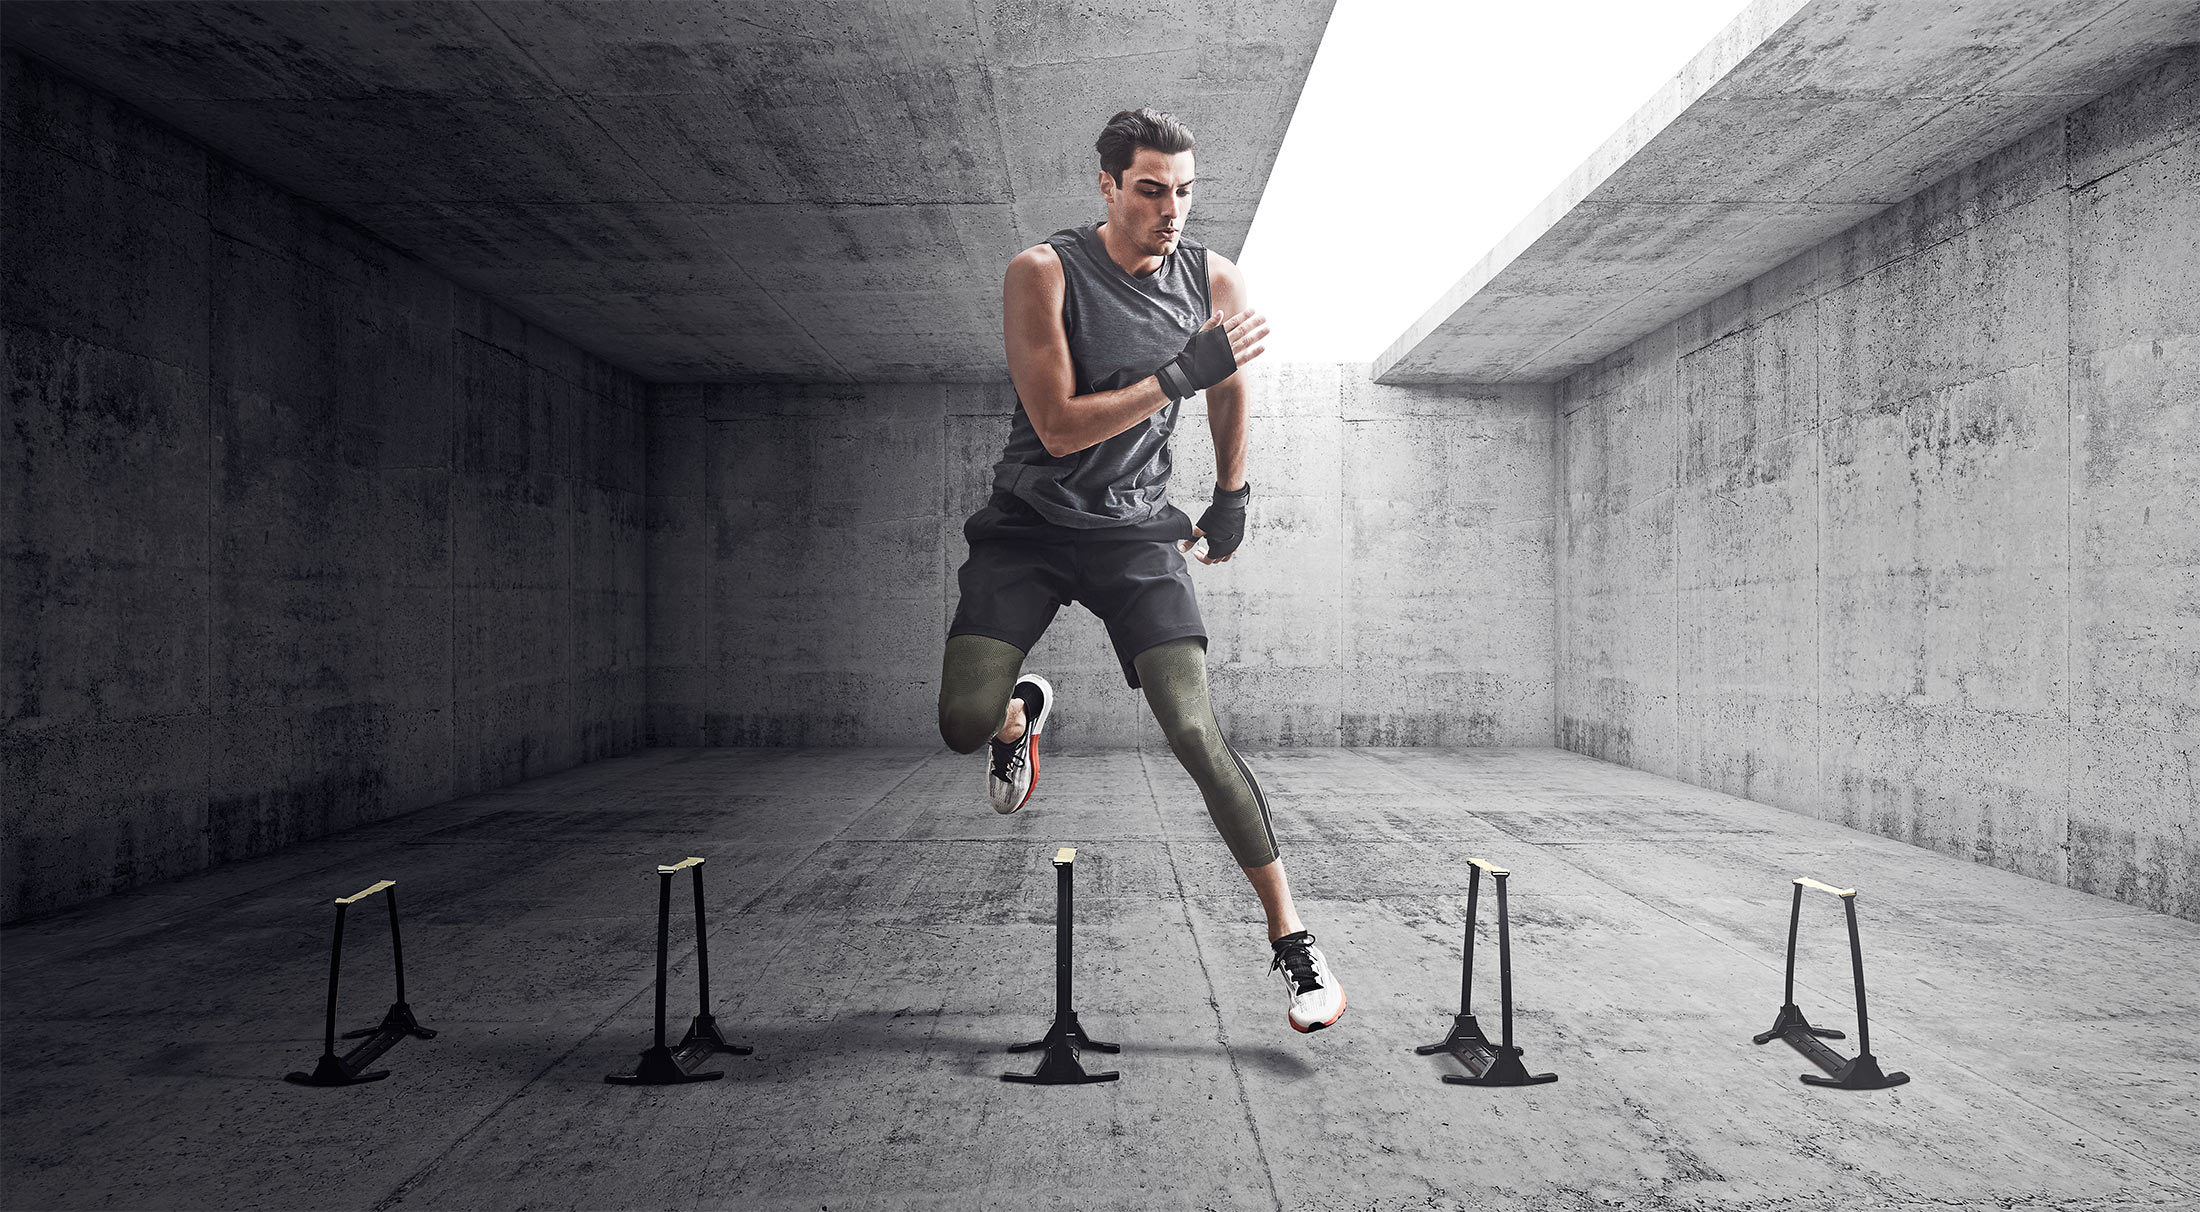 Concrete-CGI---5705_07_Hurdles_Man_V2_Layers-crop-FINAL